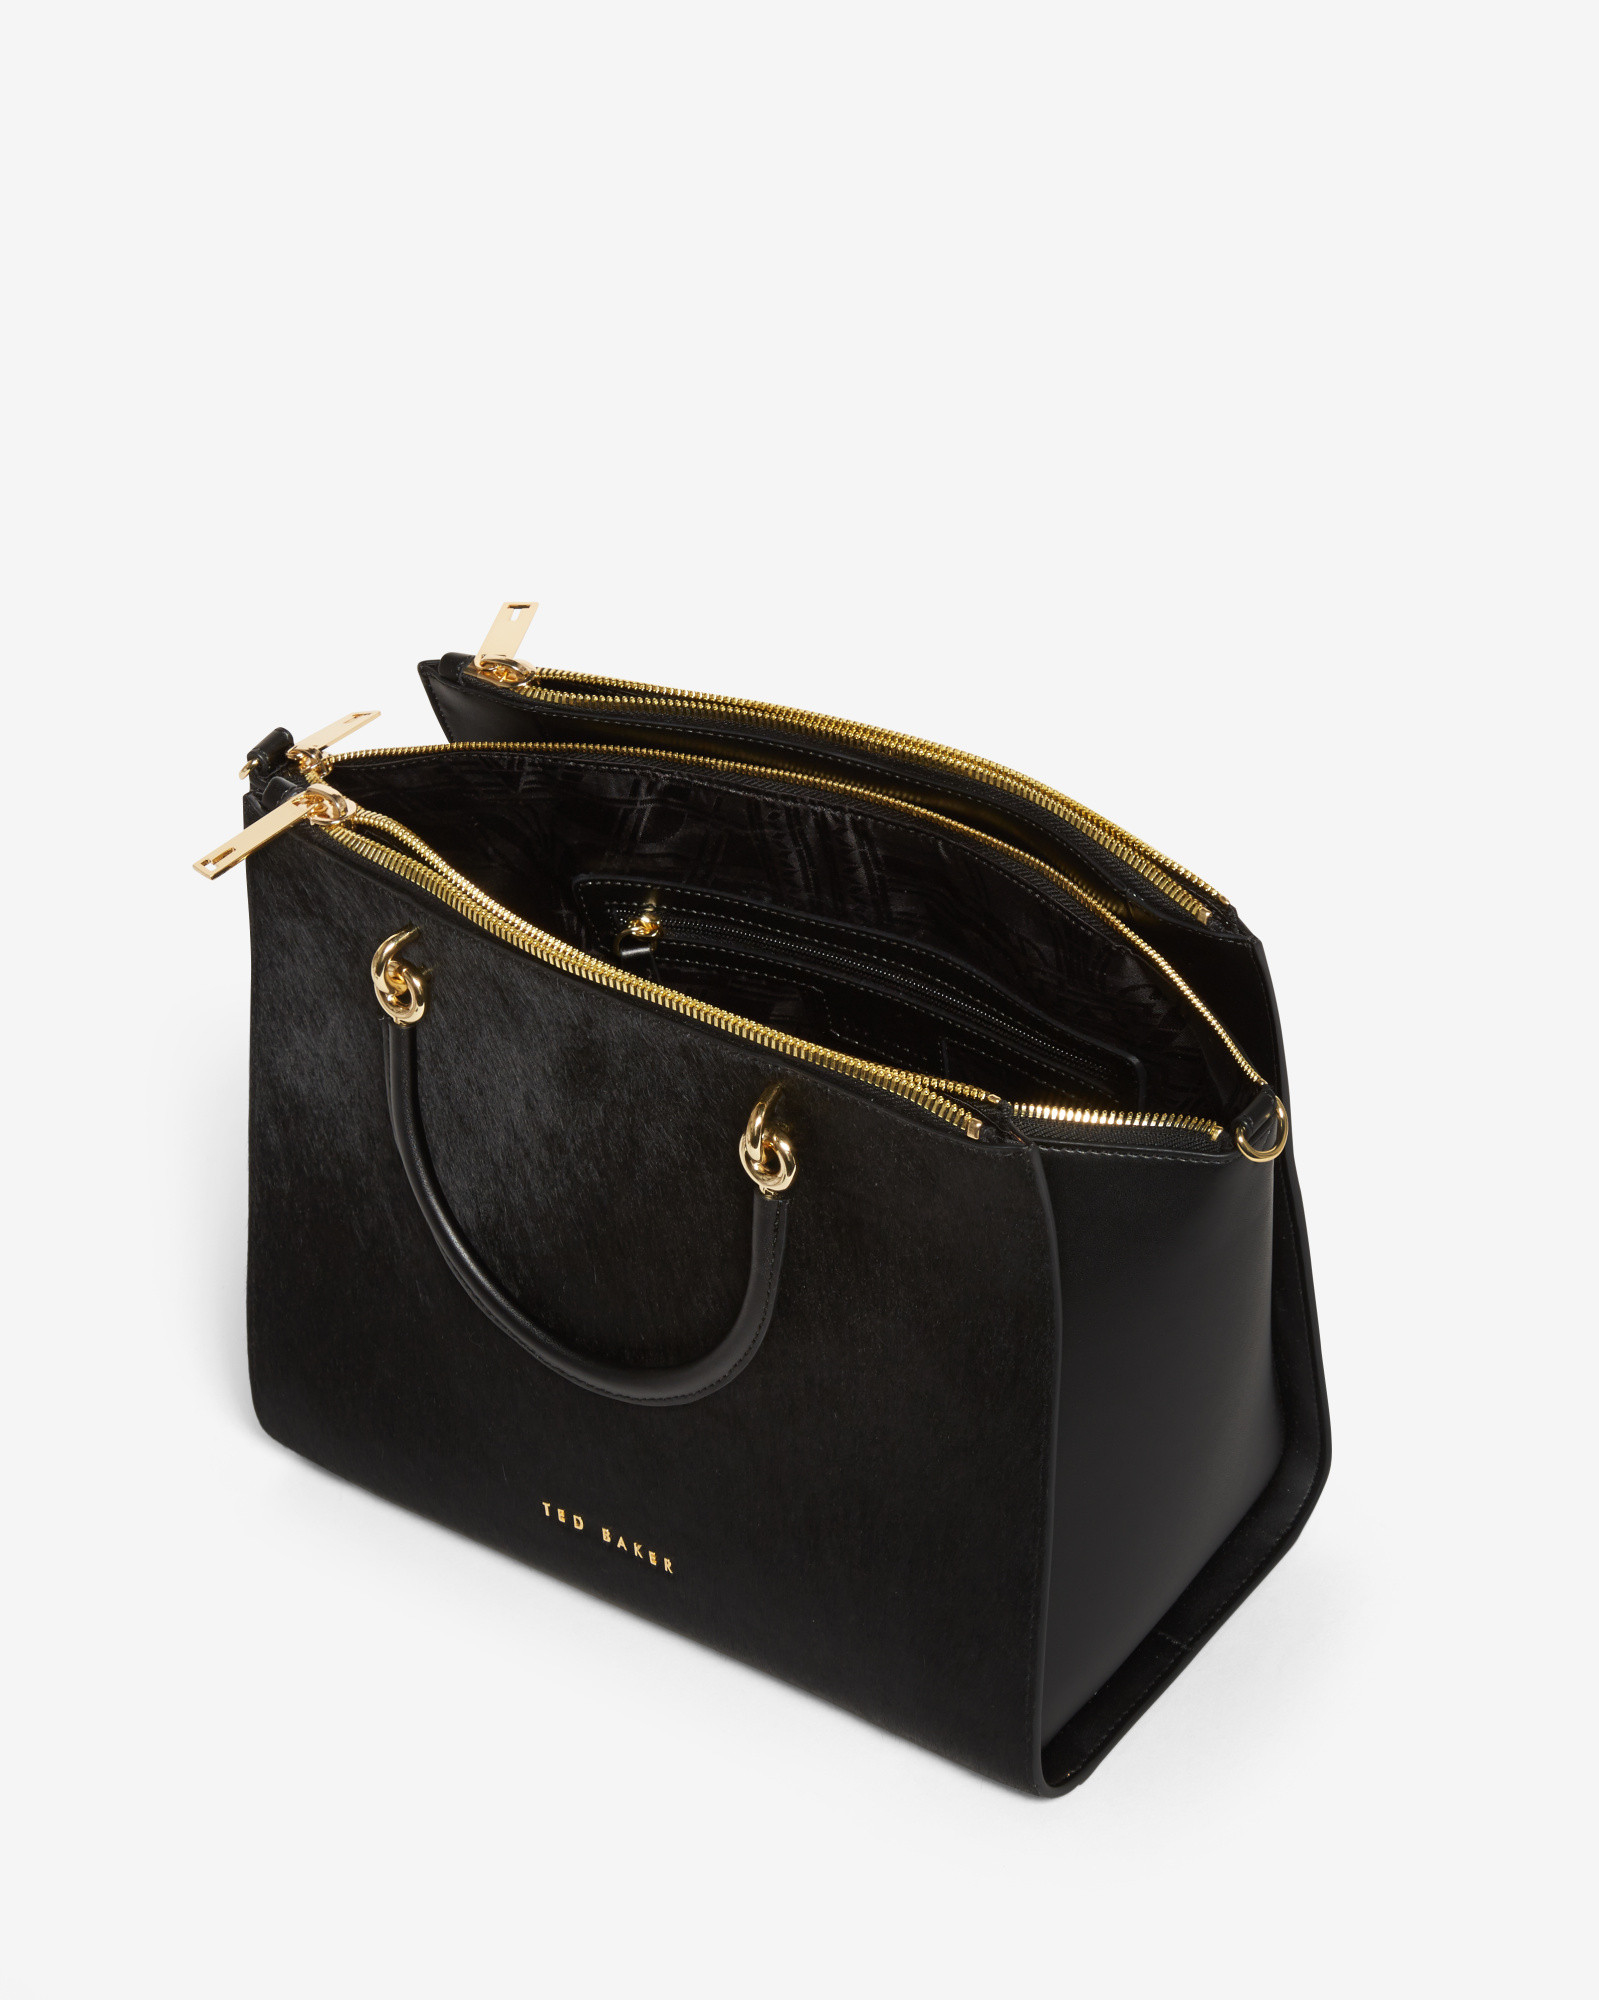 Ted baker Textured Leather Zip Tote Bag in Black | Lyst